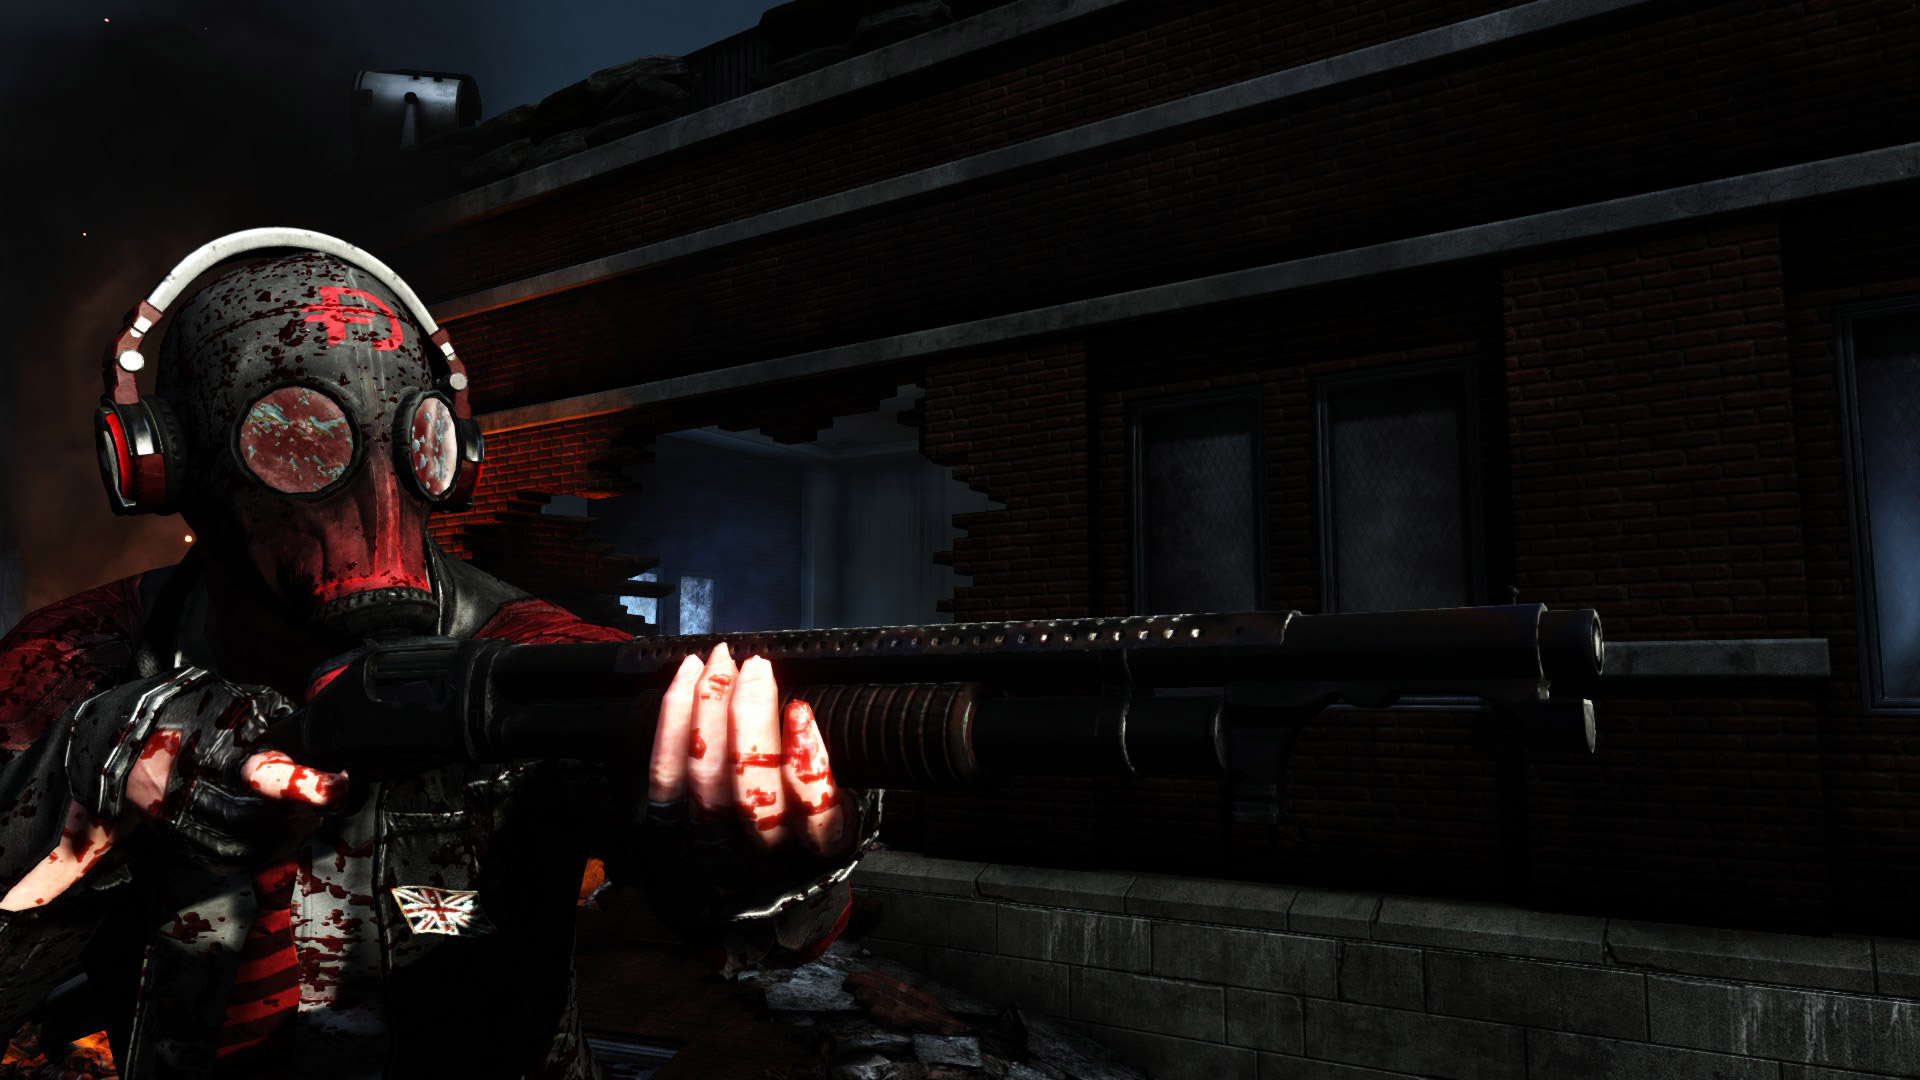 Killing Floor 2 Wallpaper in 1920x1080